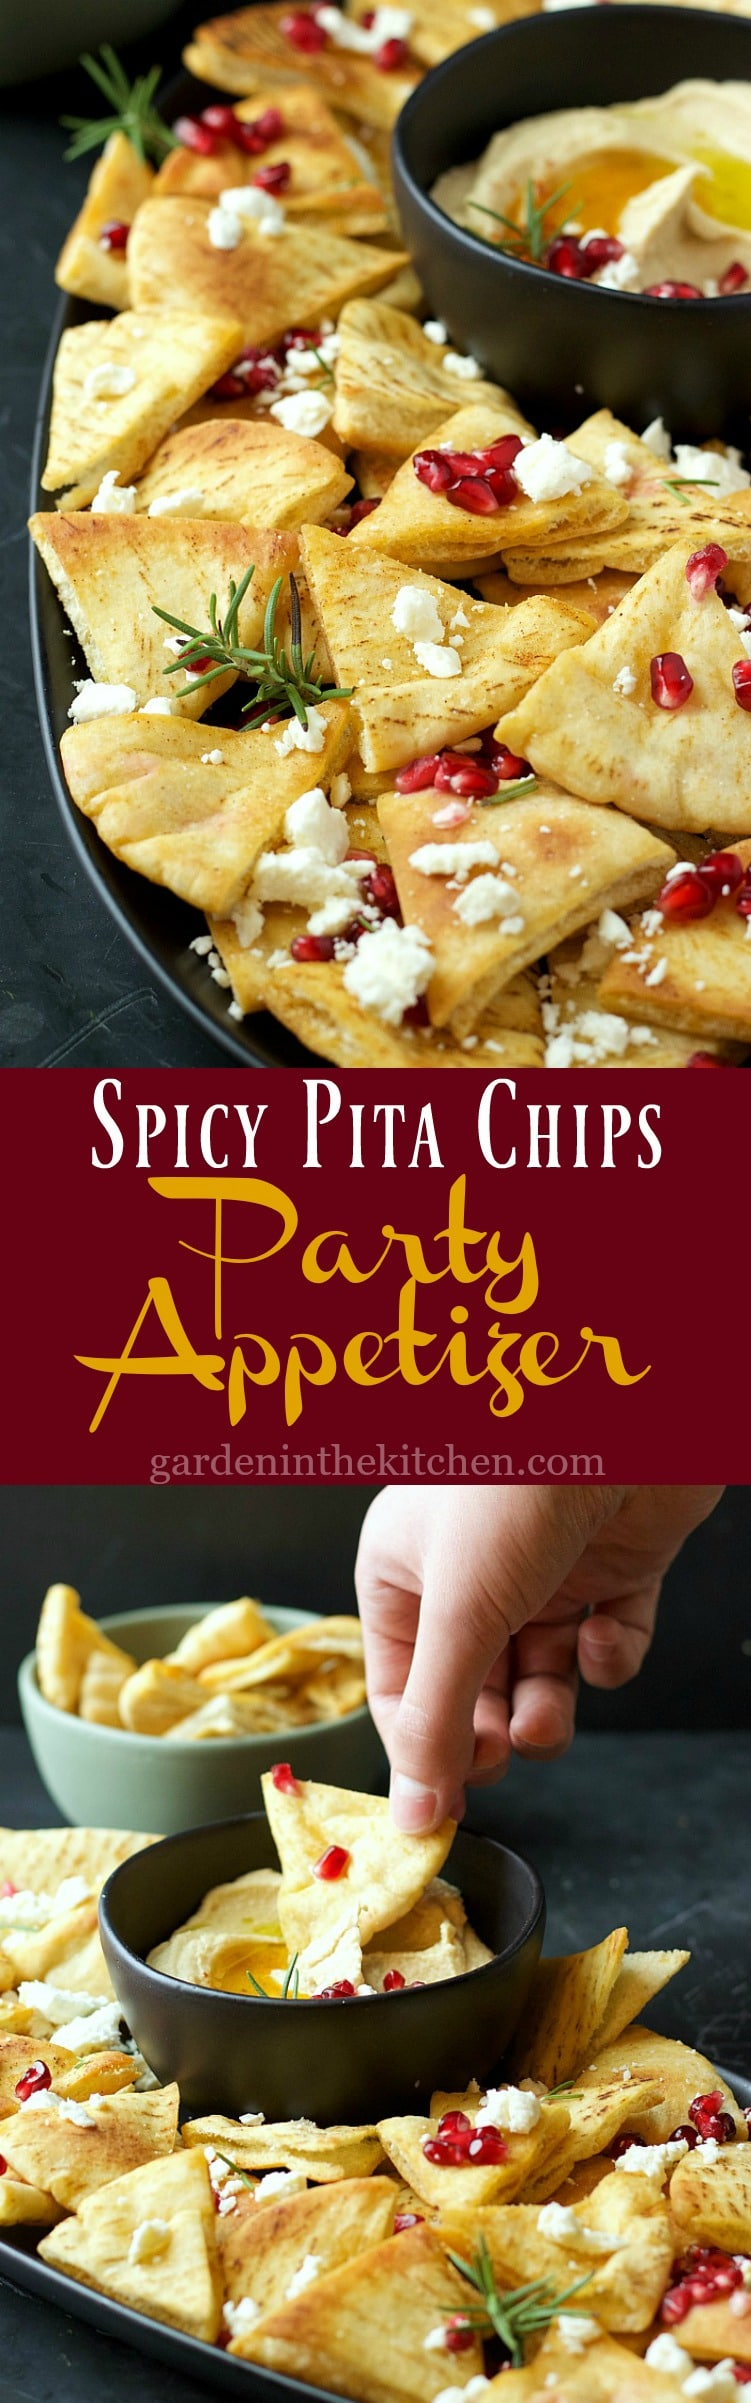 Spicy Pita Chips Party Appetizer | Garden in the Kitchen